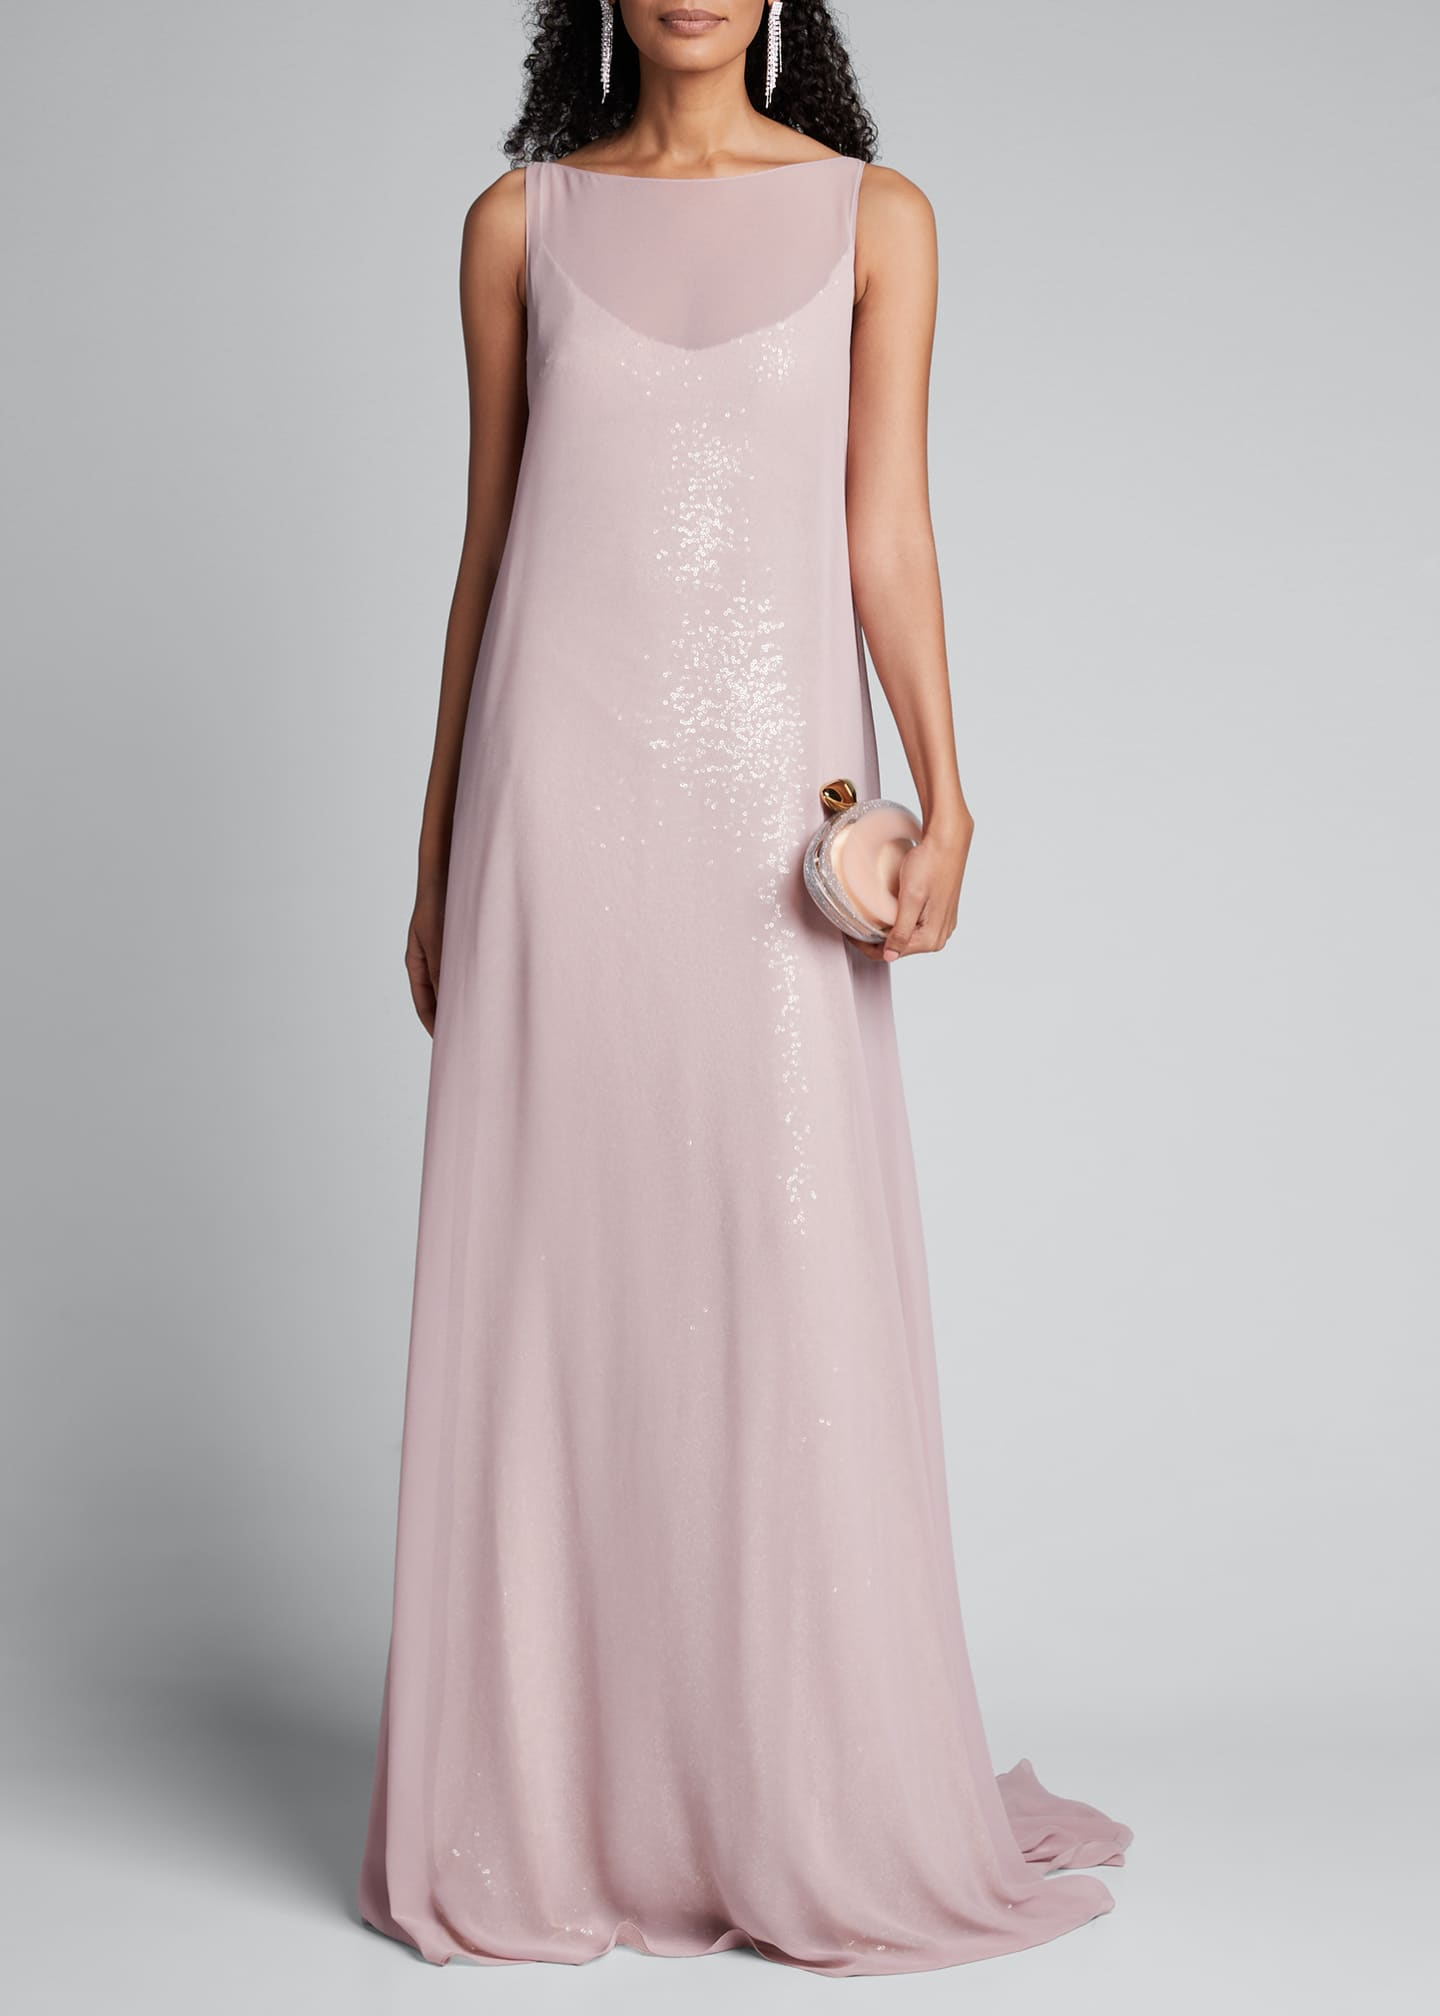 Badgley Mischka Couture Shimmered Cape Gown